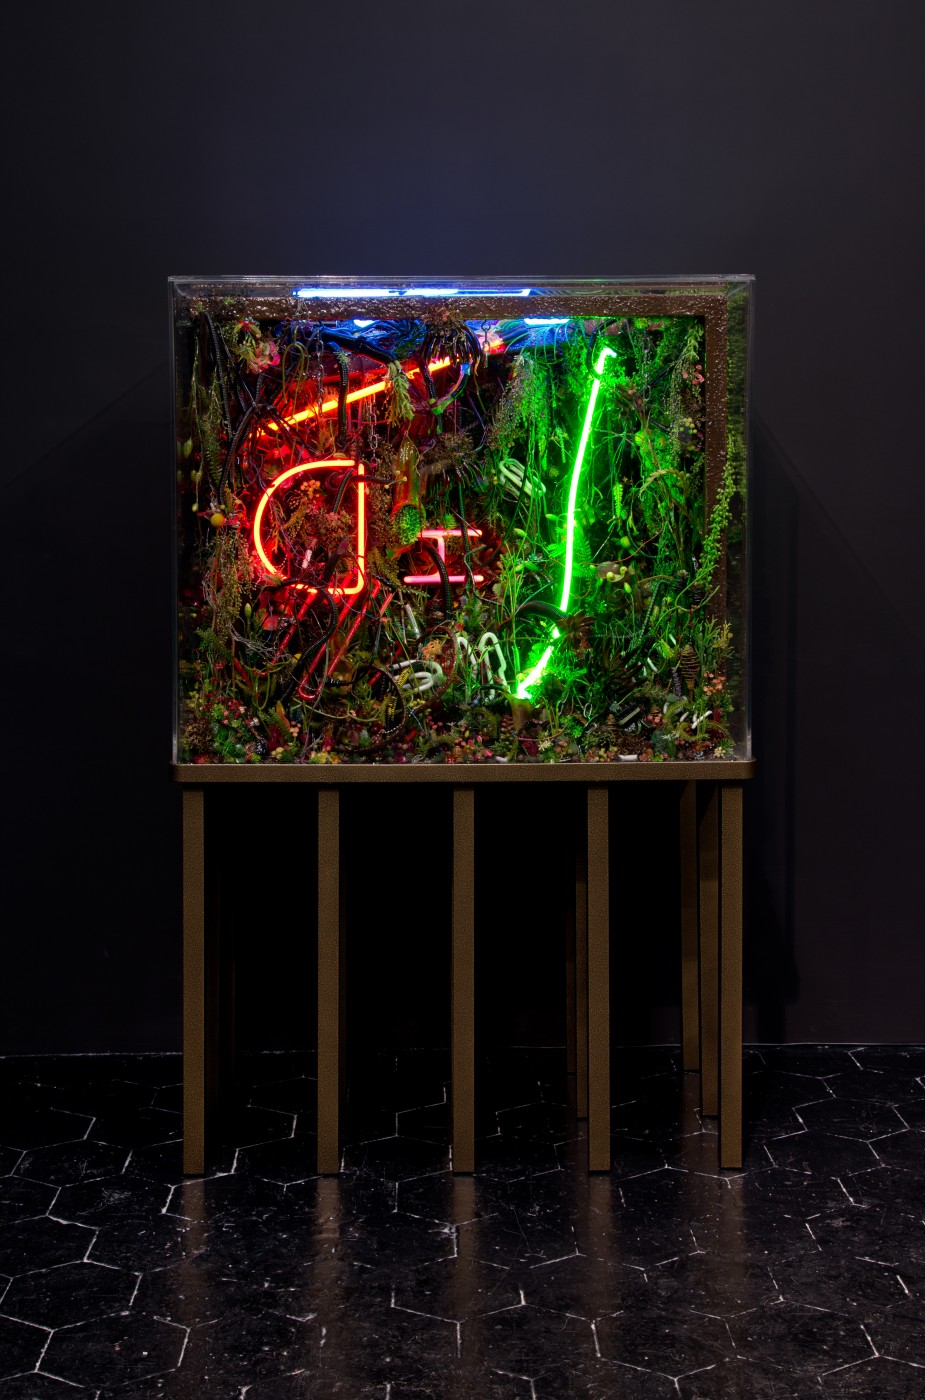 NATURE THEATER OF VIOLENT SUCCESSION  The Extinction of Neon 2</I>, 2015 Acrylic terrarium, modeled landscape, used and broken neon signs, plastic flora, gallows structure, automotive detritus, steel chains, GTO wires, found objects, insect and animal matter, polymer resin, custom aluminum stand 